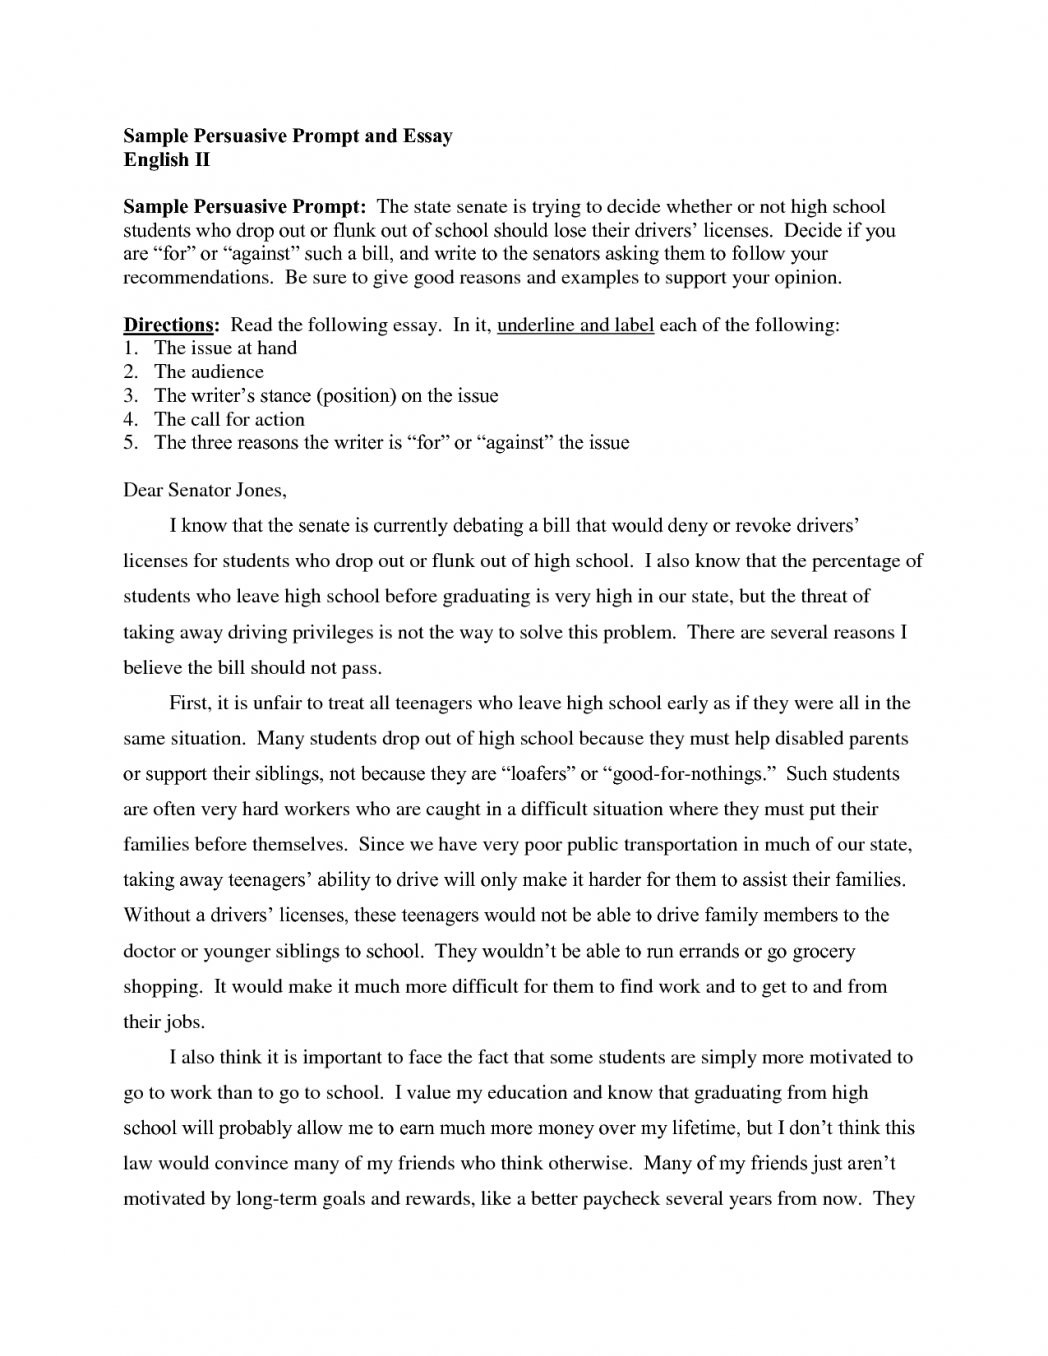 027 Essay Examplets High School Students College Paper Academic Writing Argumentative Topics For Sample Examples Of Persuasive Essays Pictur Funny Creative 1048x1356 Rare Prompts Unique 6th Grade Full